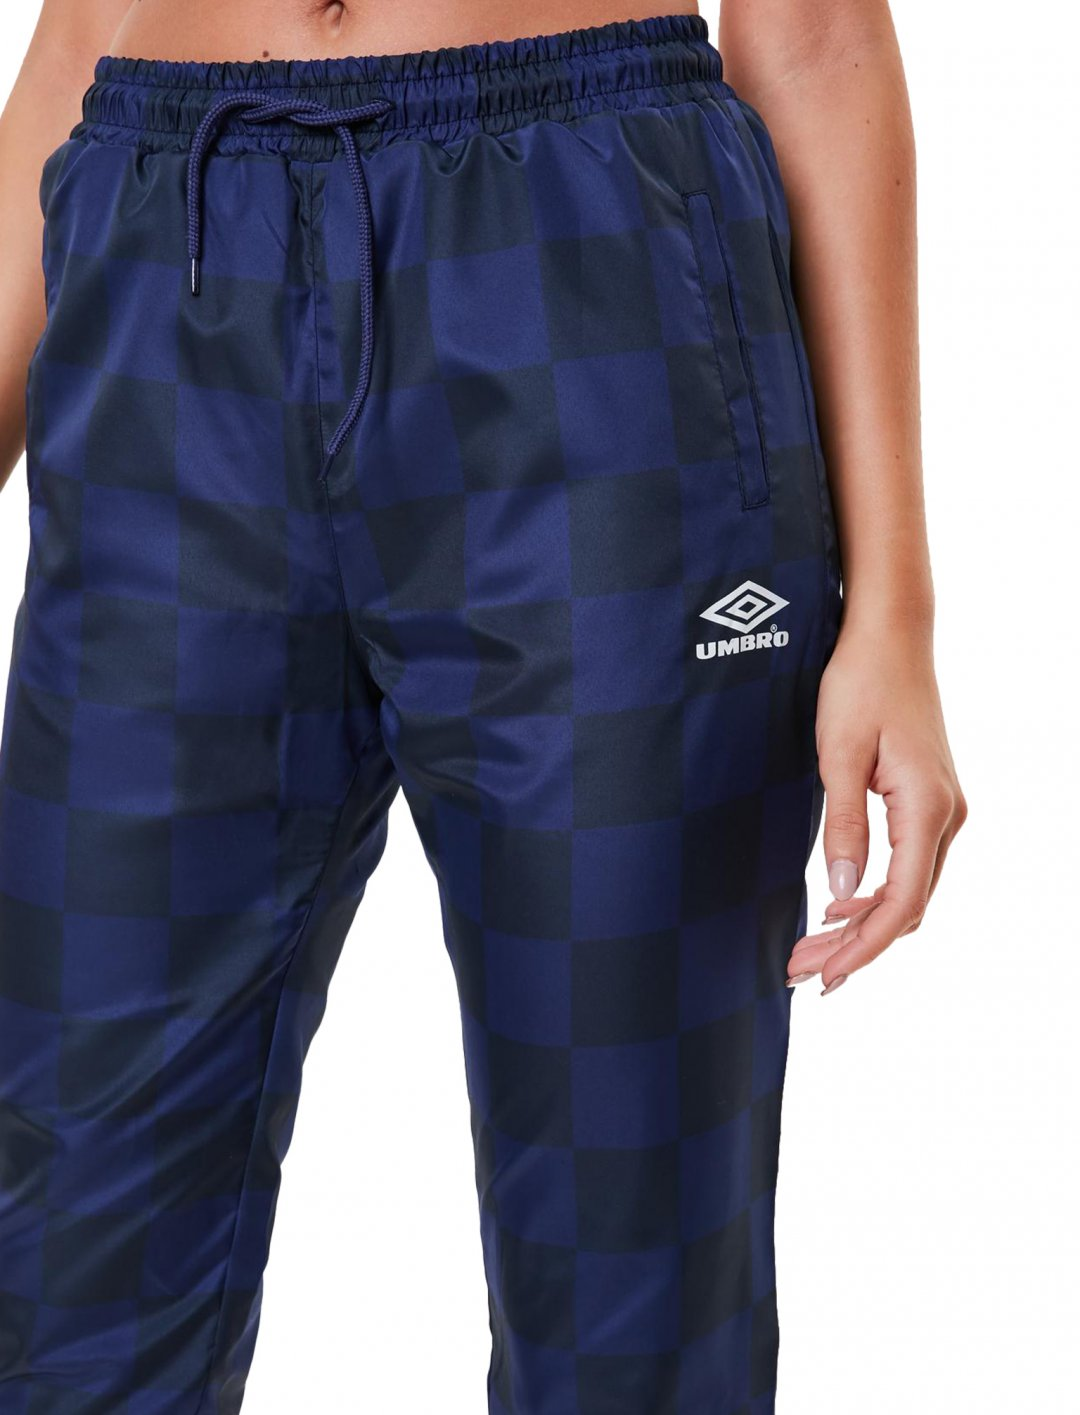 "Umbro Track Pant Joggers {""id"":5,""product_section_id"":1,""name"":""Clothing"",""order"":5} Umbro"